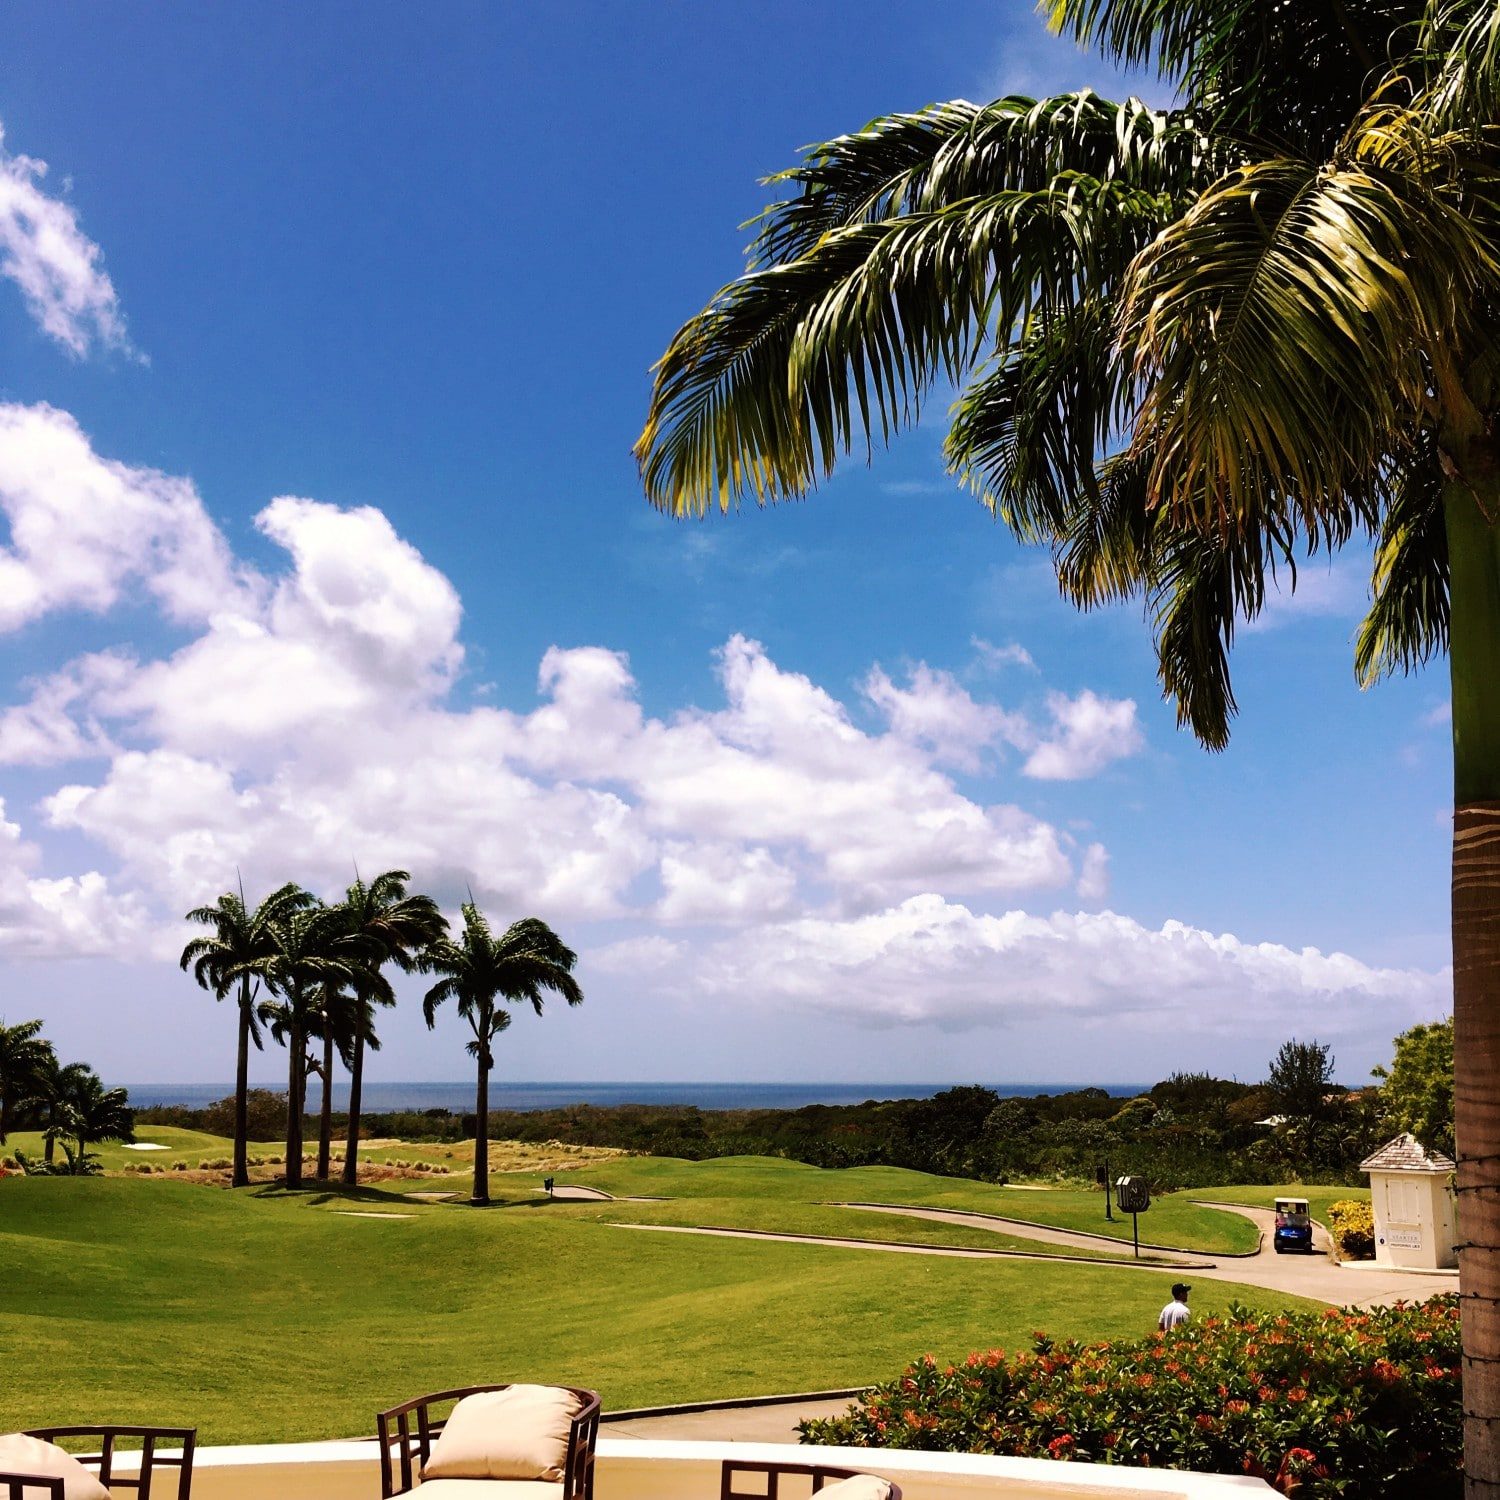 Royal Westmoreland Golf Resort, Barbados - one of the best luxury hotels in Barbados